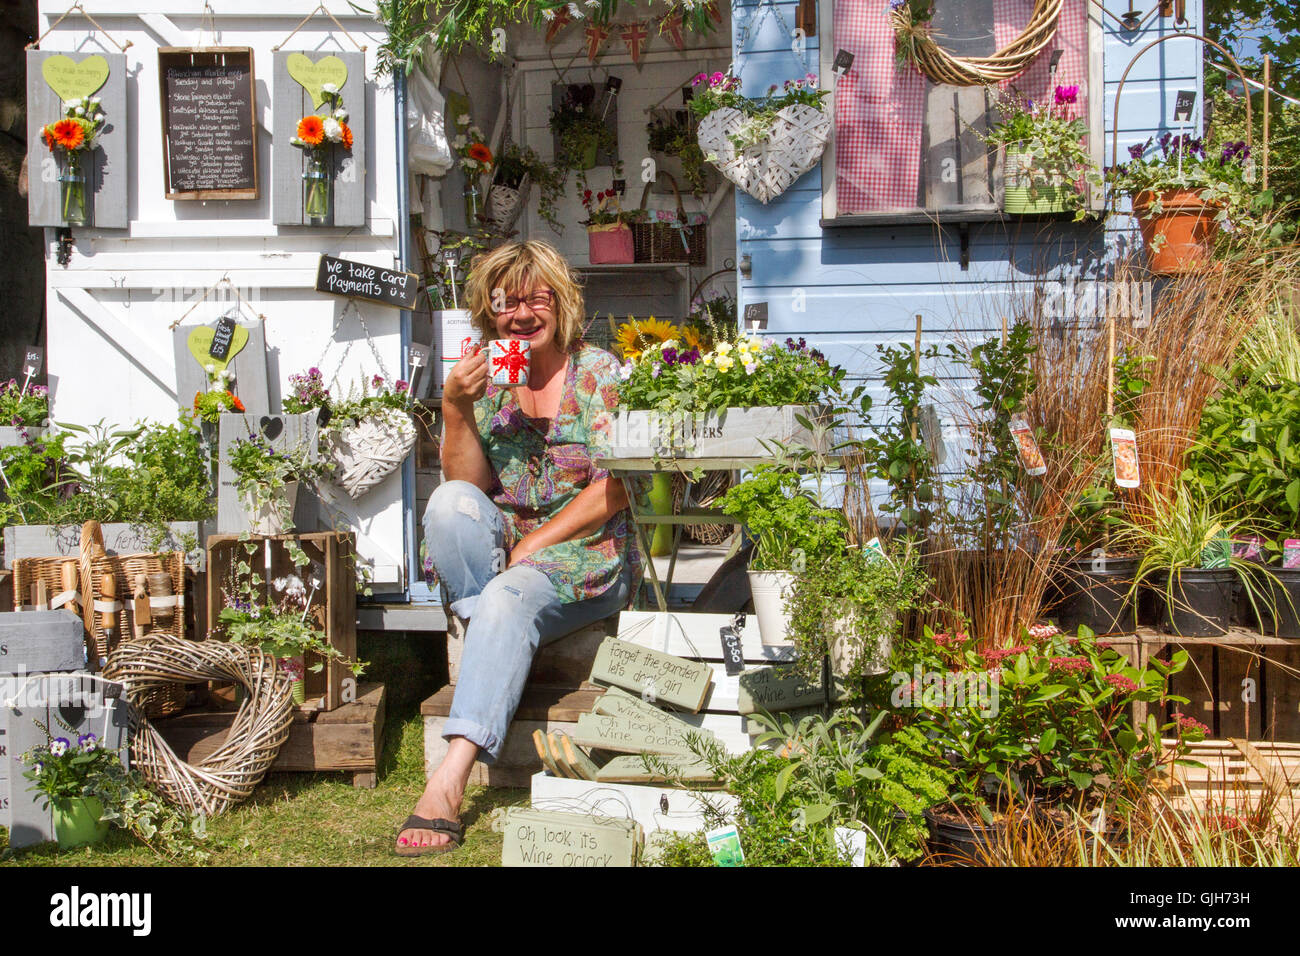 Southport Flower Show, Merseyside, UK. 17th Aug 2016: Louise Campbell taking a well earned break after finalising - Stock Image